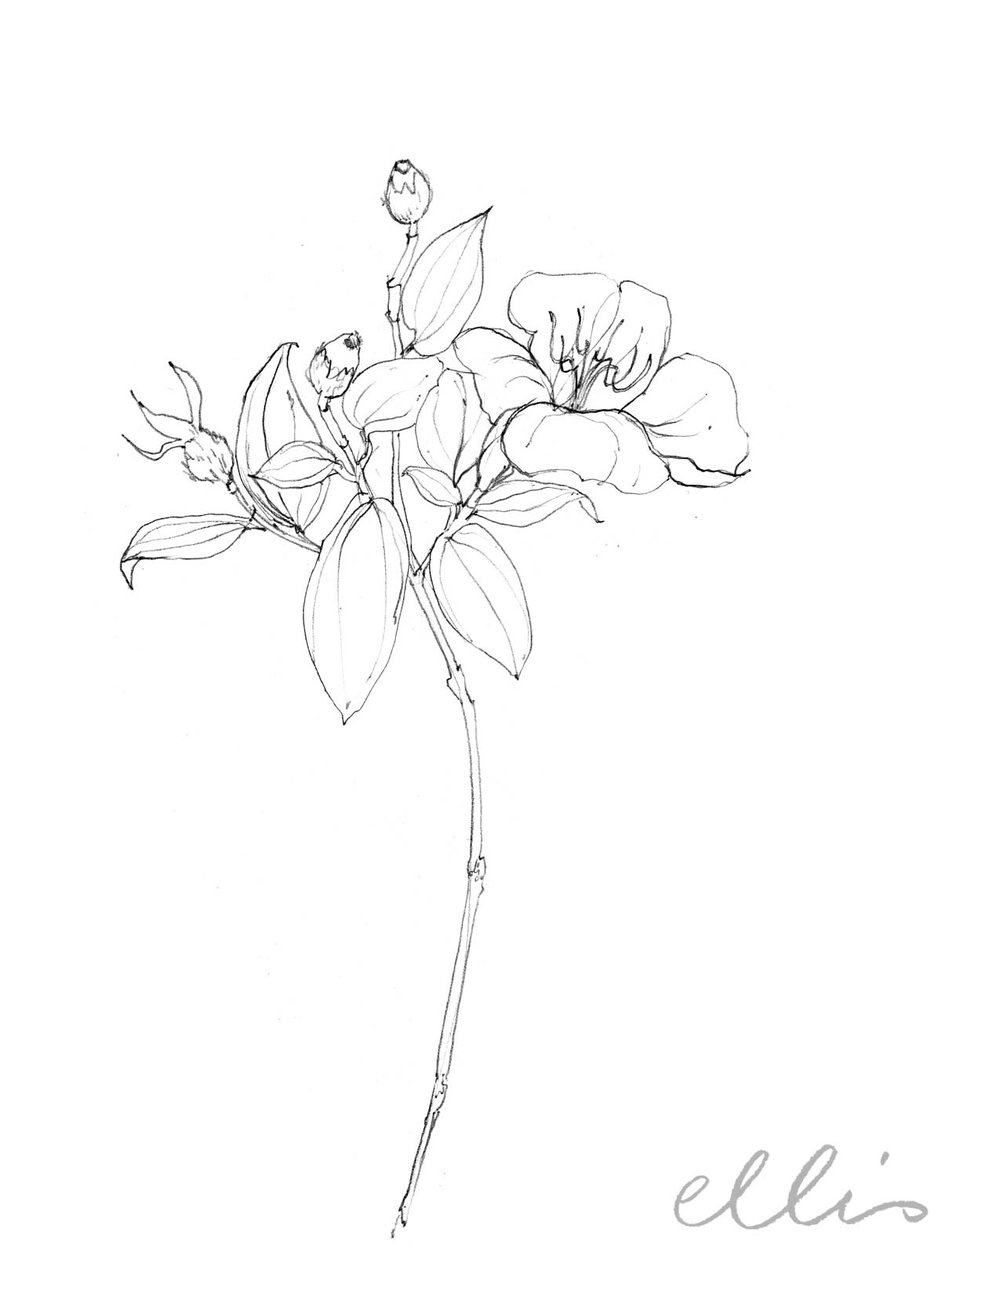 Erin Ellis_100 days project botanical drawings_2013-78.jpg